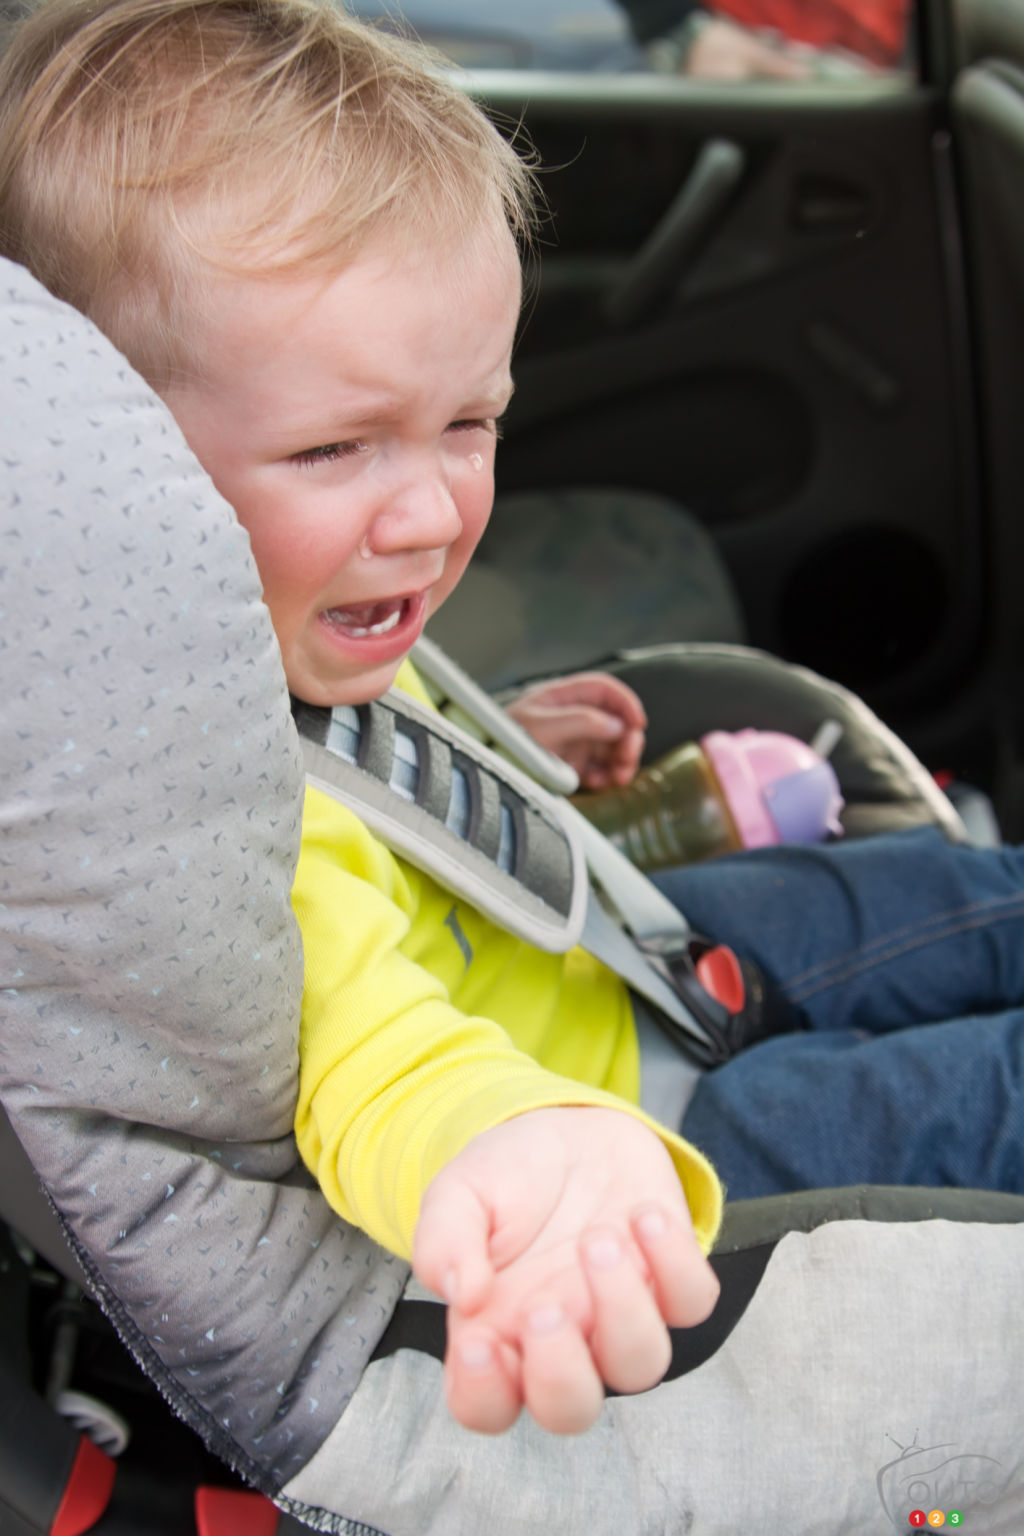 Kids and pets left in the car: When heat kills